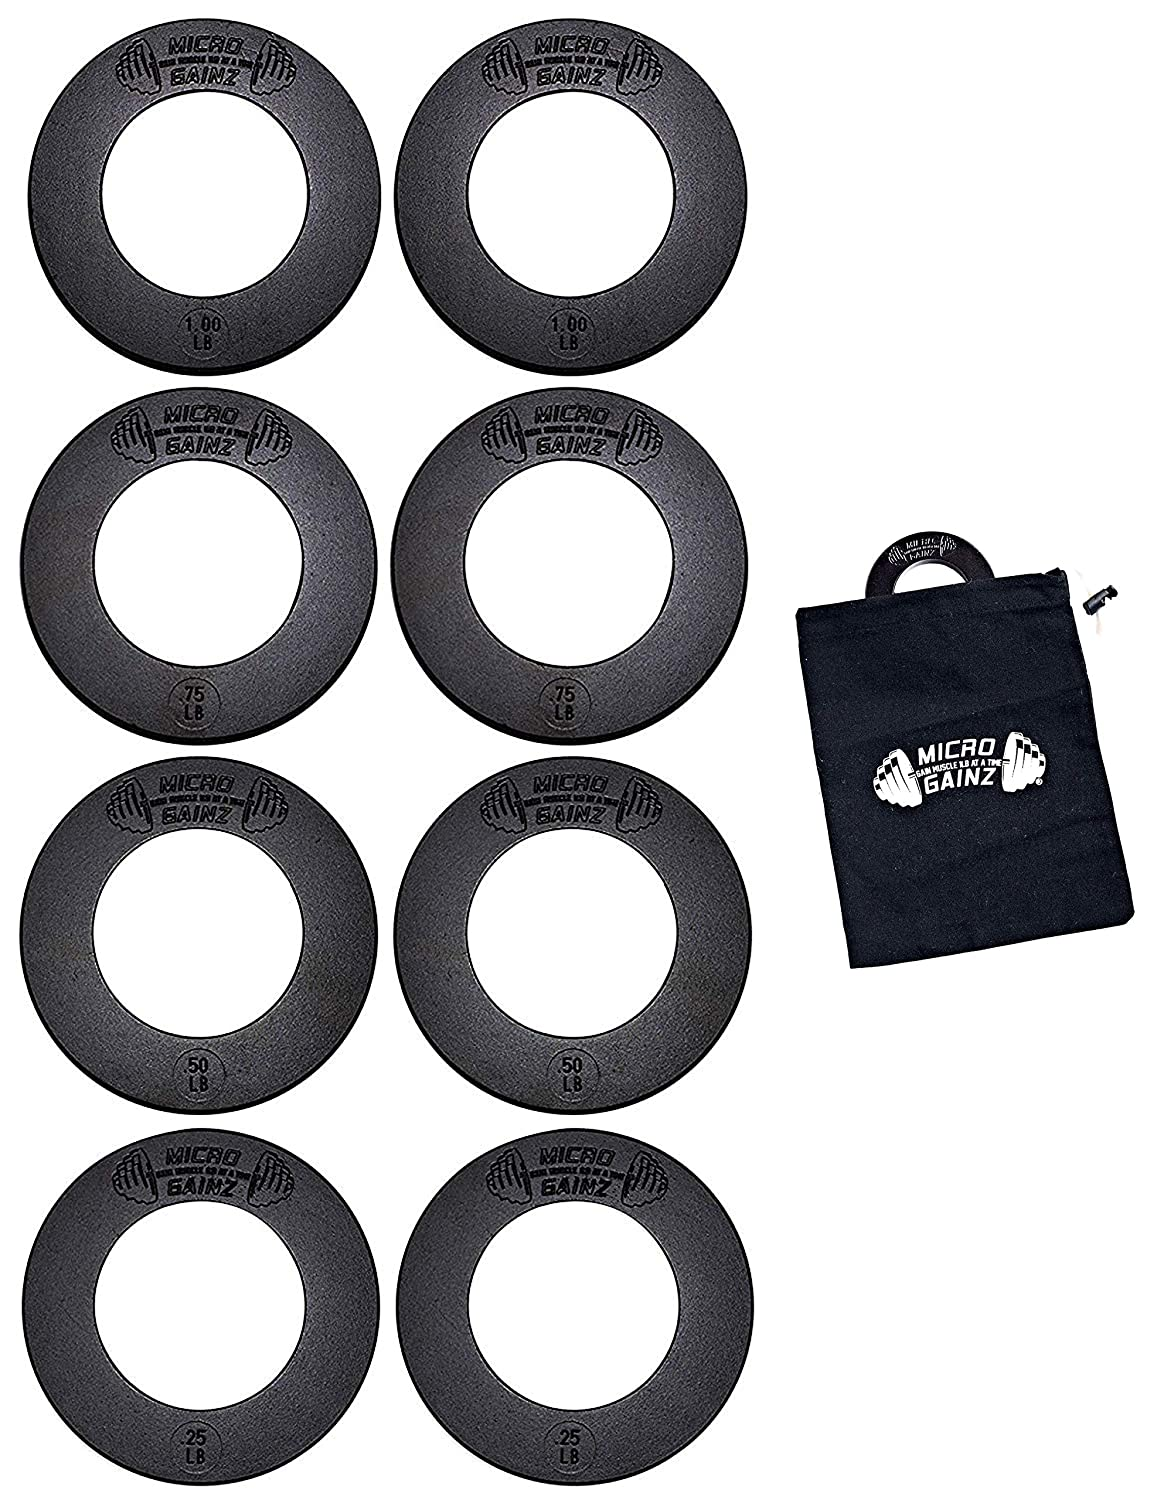 USA Made Micro Gainz Olympic Fractional Weight Plate Set of .25LB-.50LB-.75LB-1LB Plates 8 Plate Set – Designed for Olympic Barbells, Used for Strength Training and Micro Loading w Carrying Bag